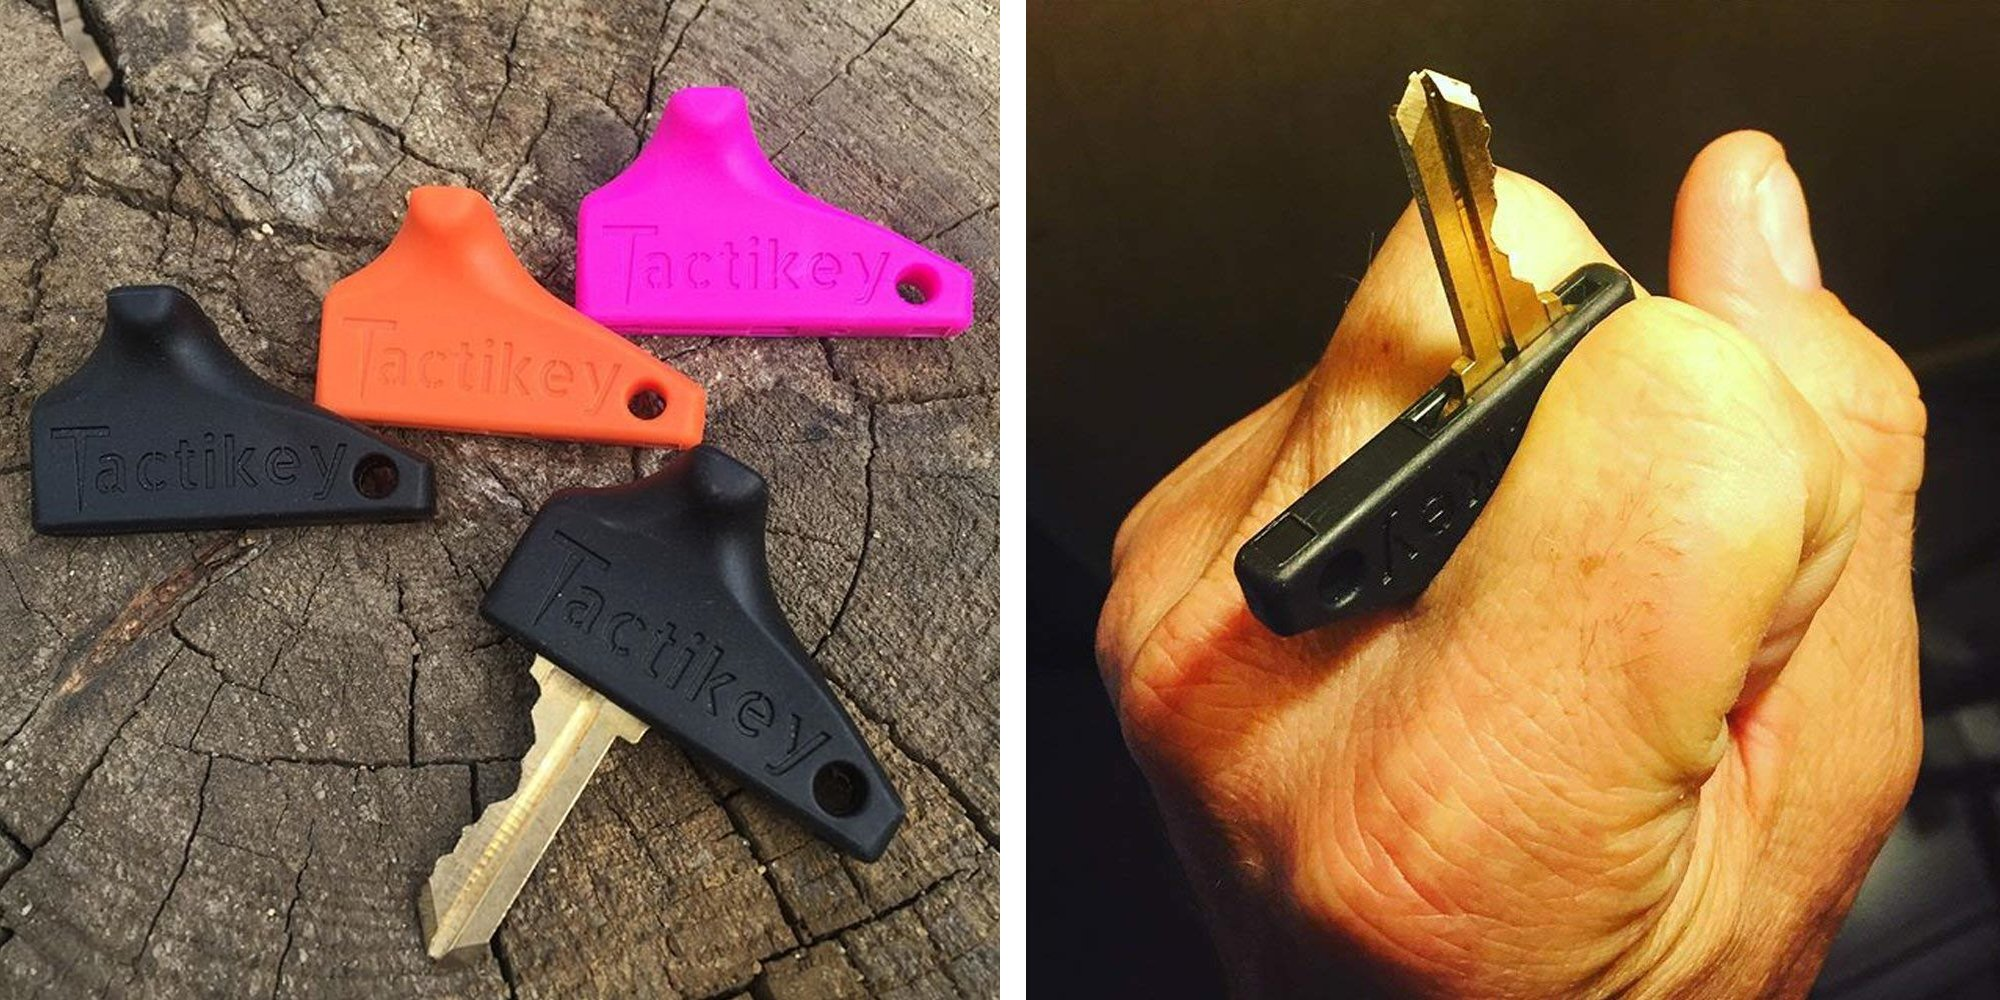 Tactikey is a close-at-hand self-defense device – The Gadgeteer